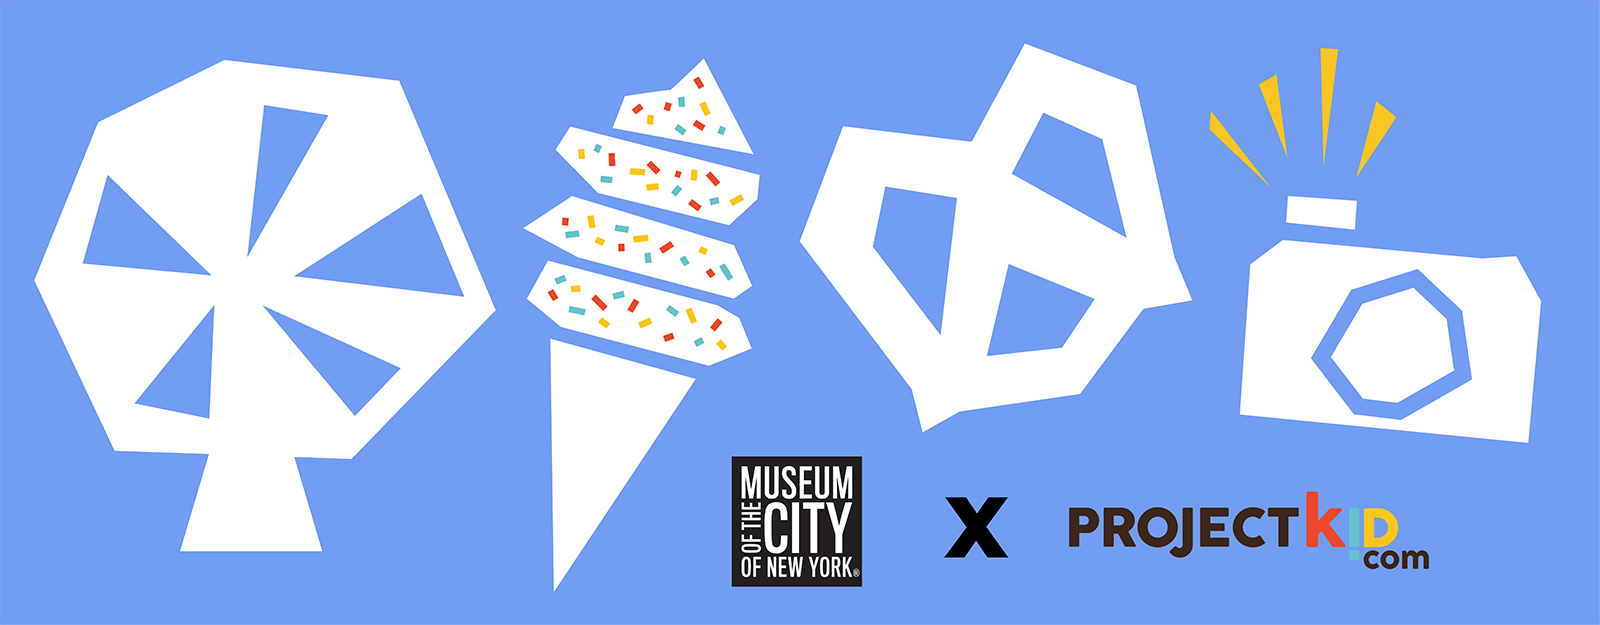 Images of shapes – a Ferris wheel, ice cream cone, pretzel, and camera – that appear to be cut out from paper floating on a light blue background, with the logos of the Museum of the City of New York and Project Kid.